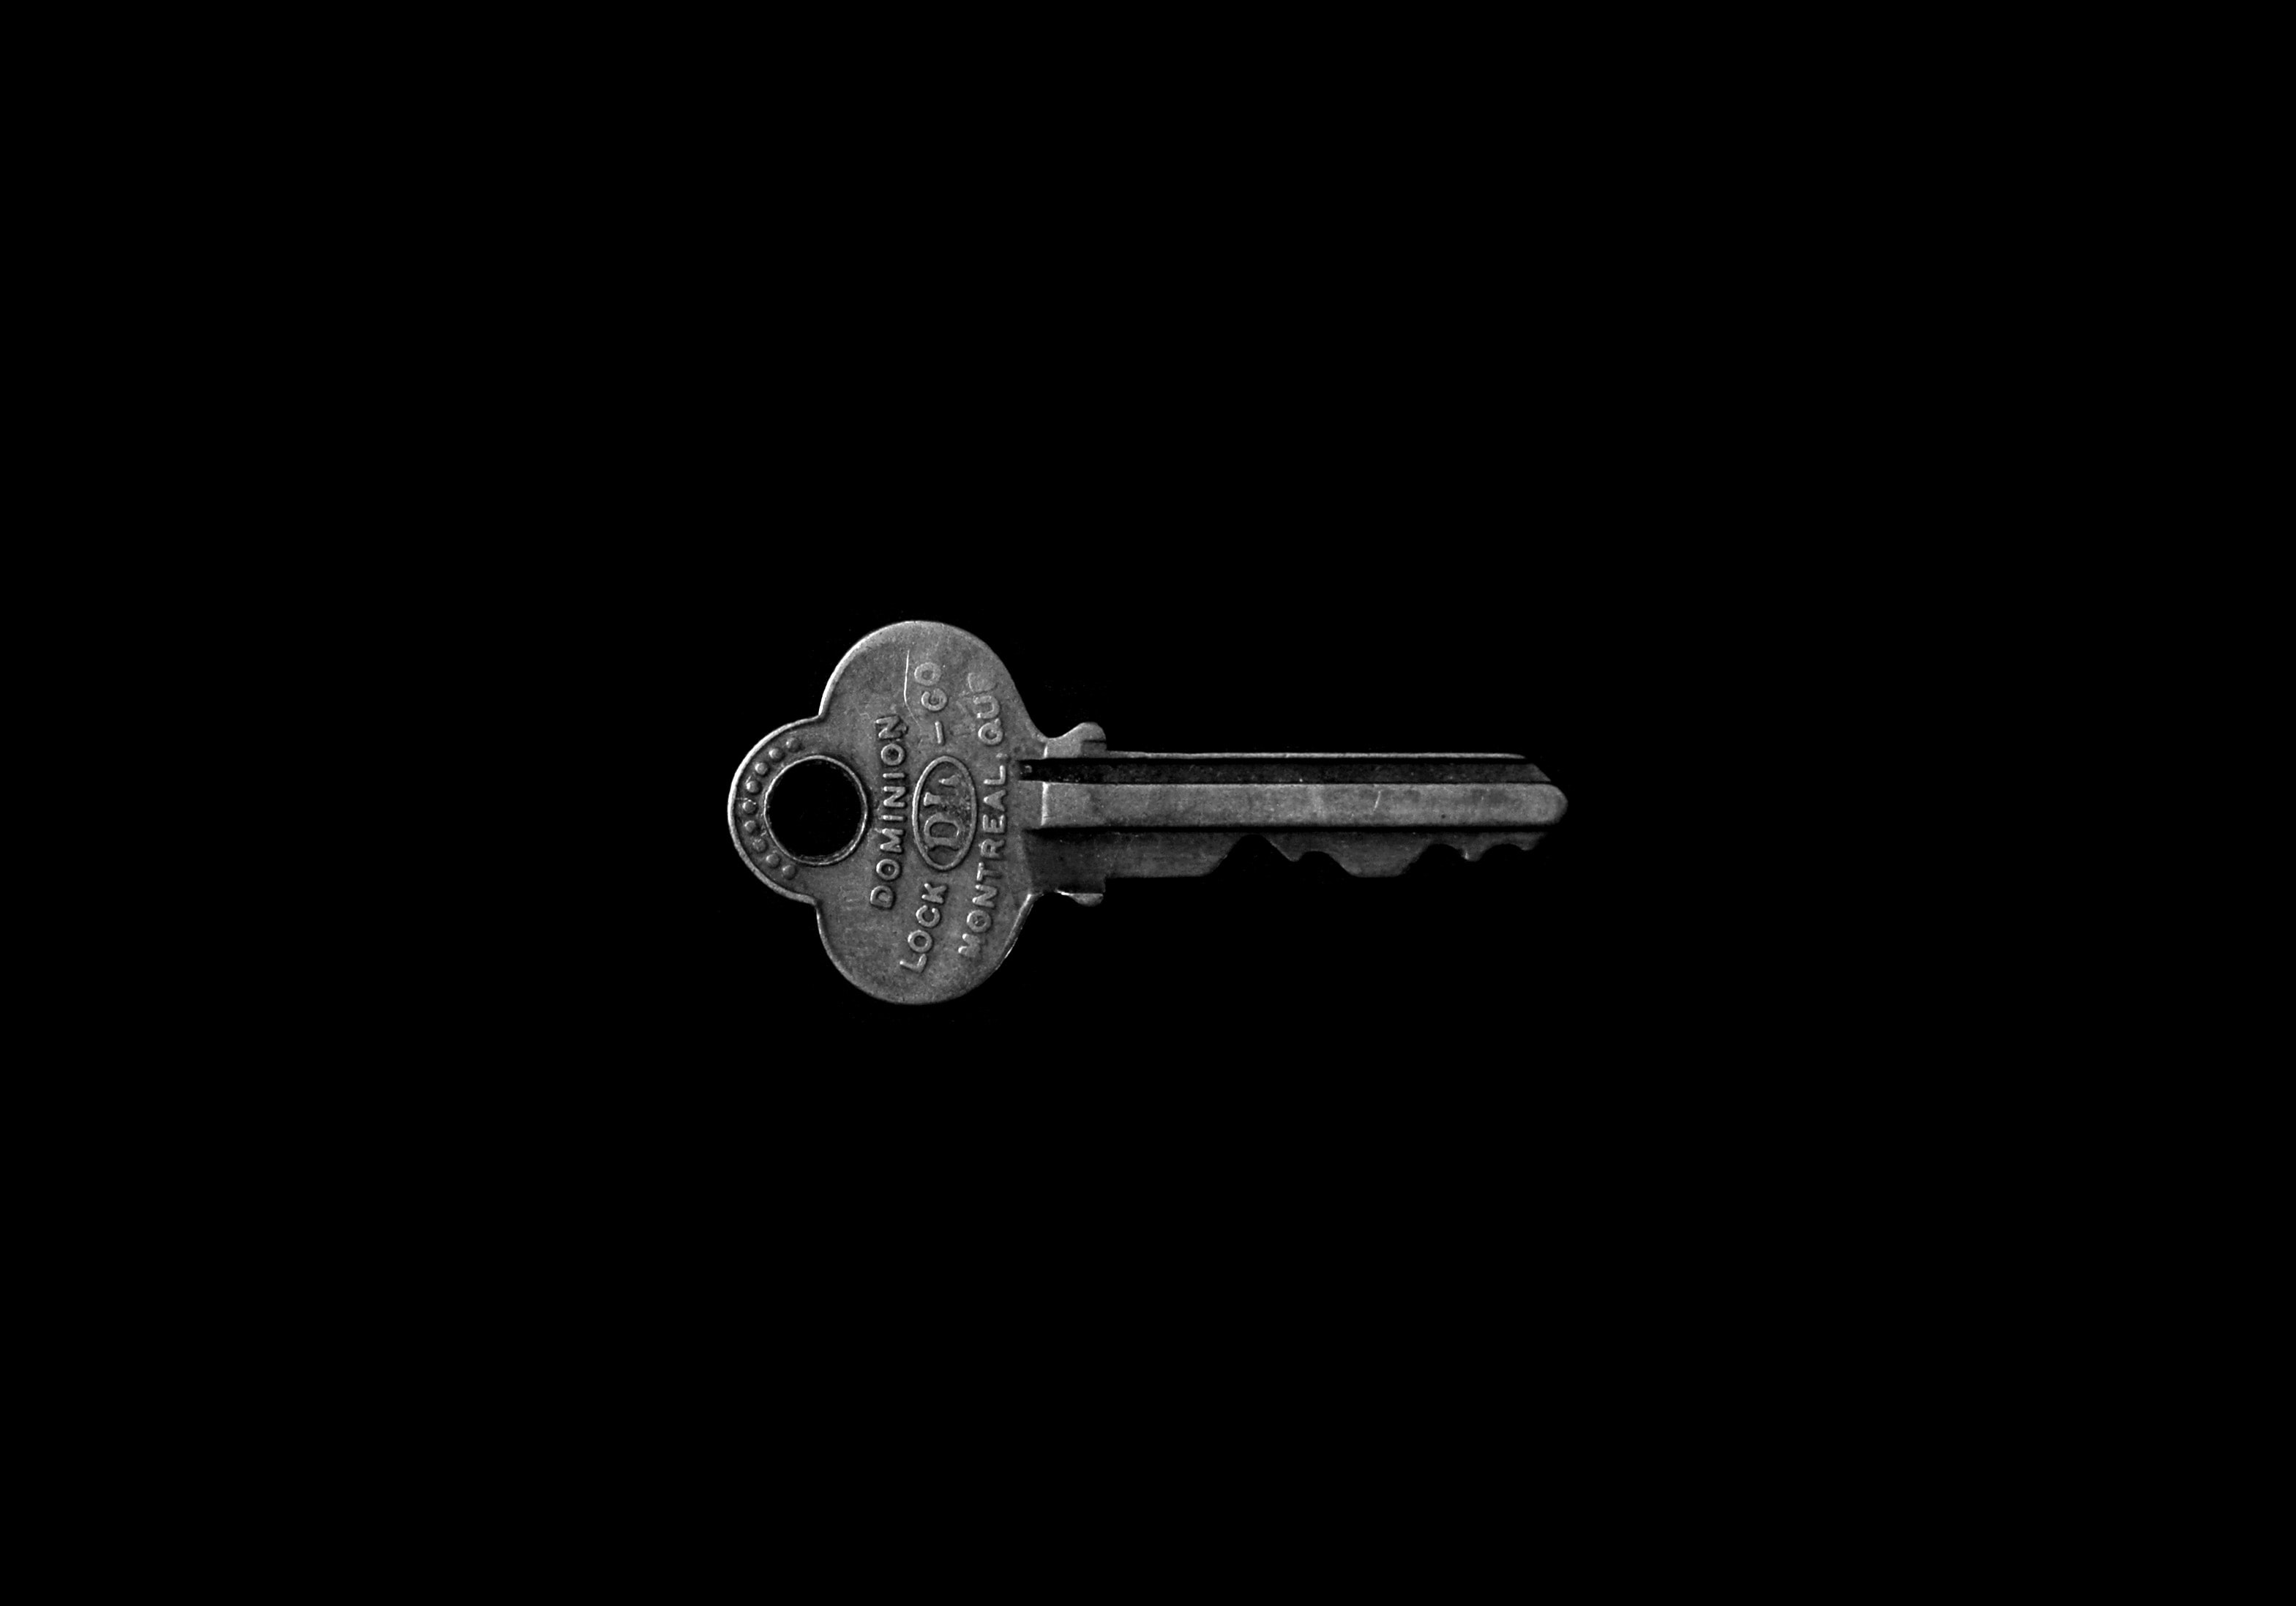 photo of key against black background